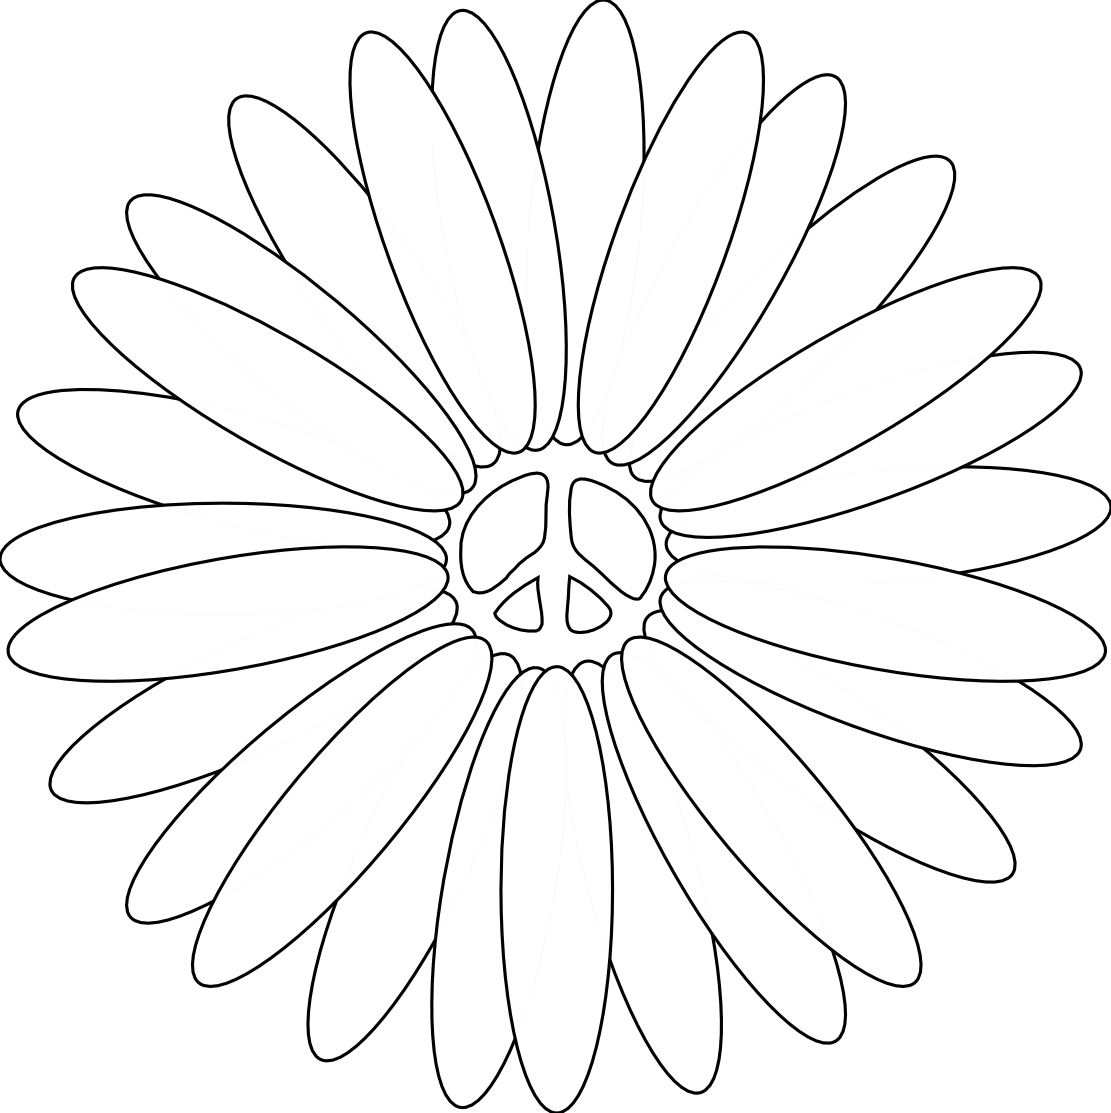 cool peace sign coloring pages - photo#6